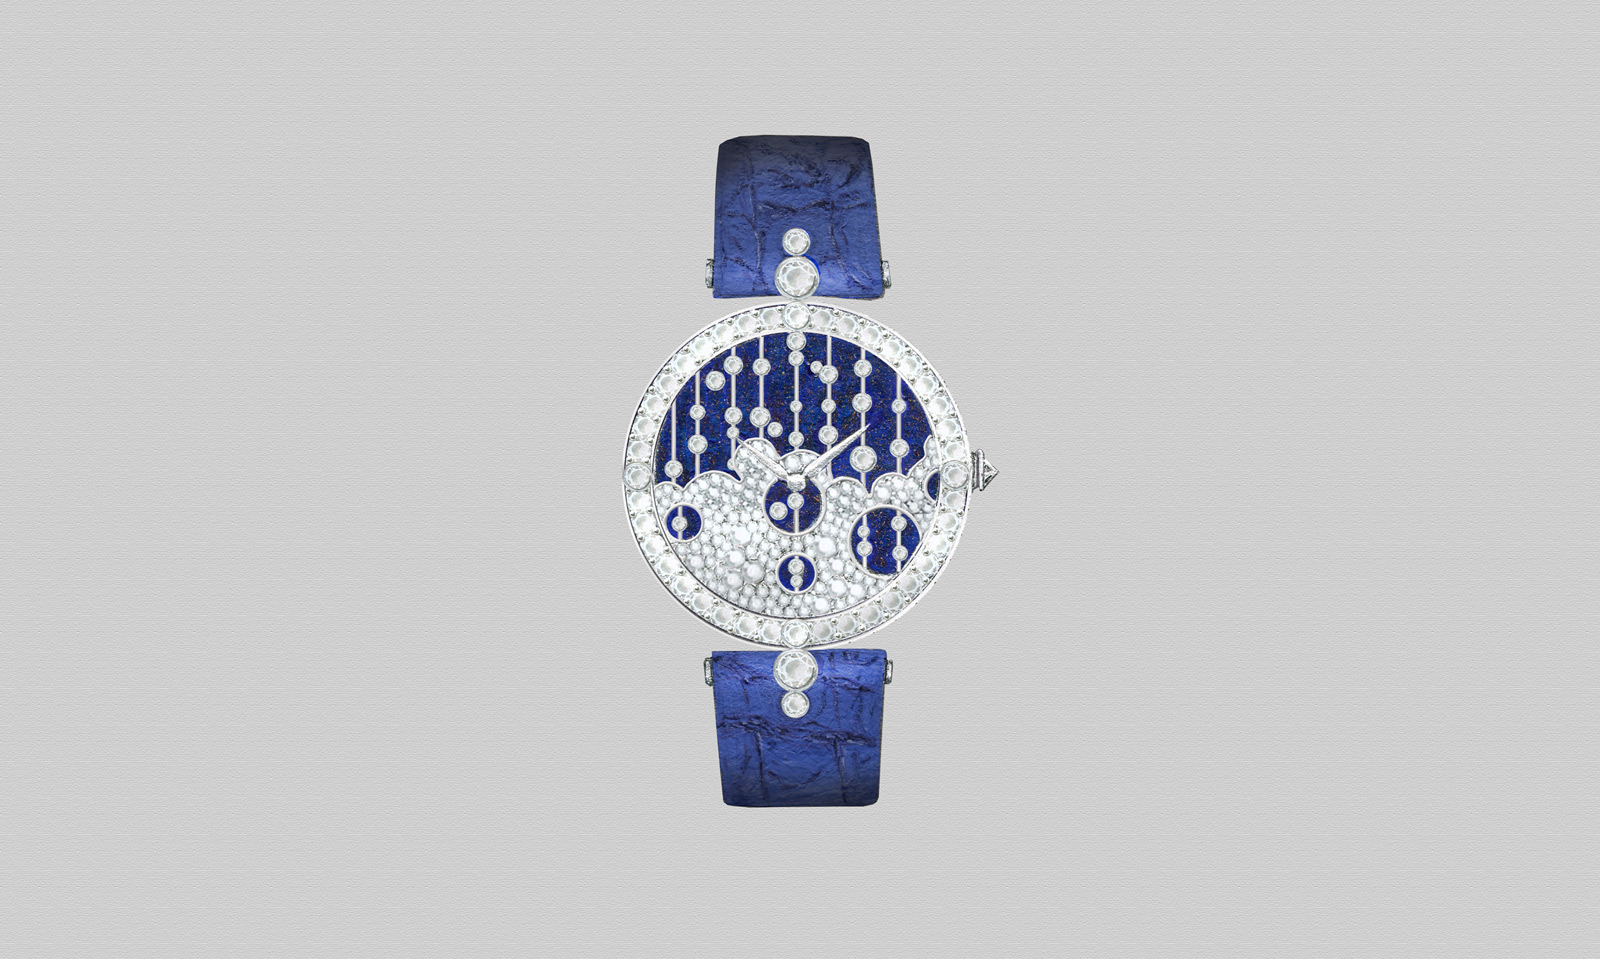 Raindance Blue Aventurine White Gold Watch with 3.15ct round brilliant cut diamonds